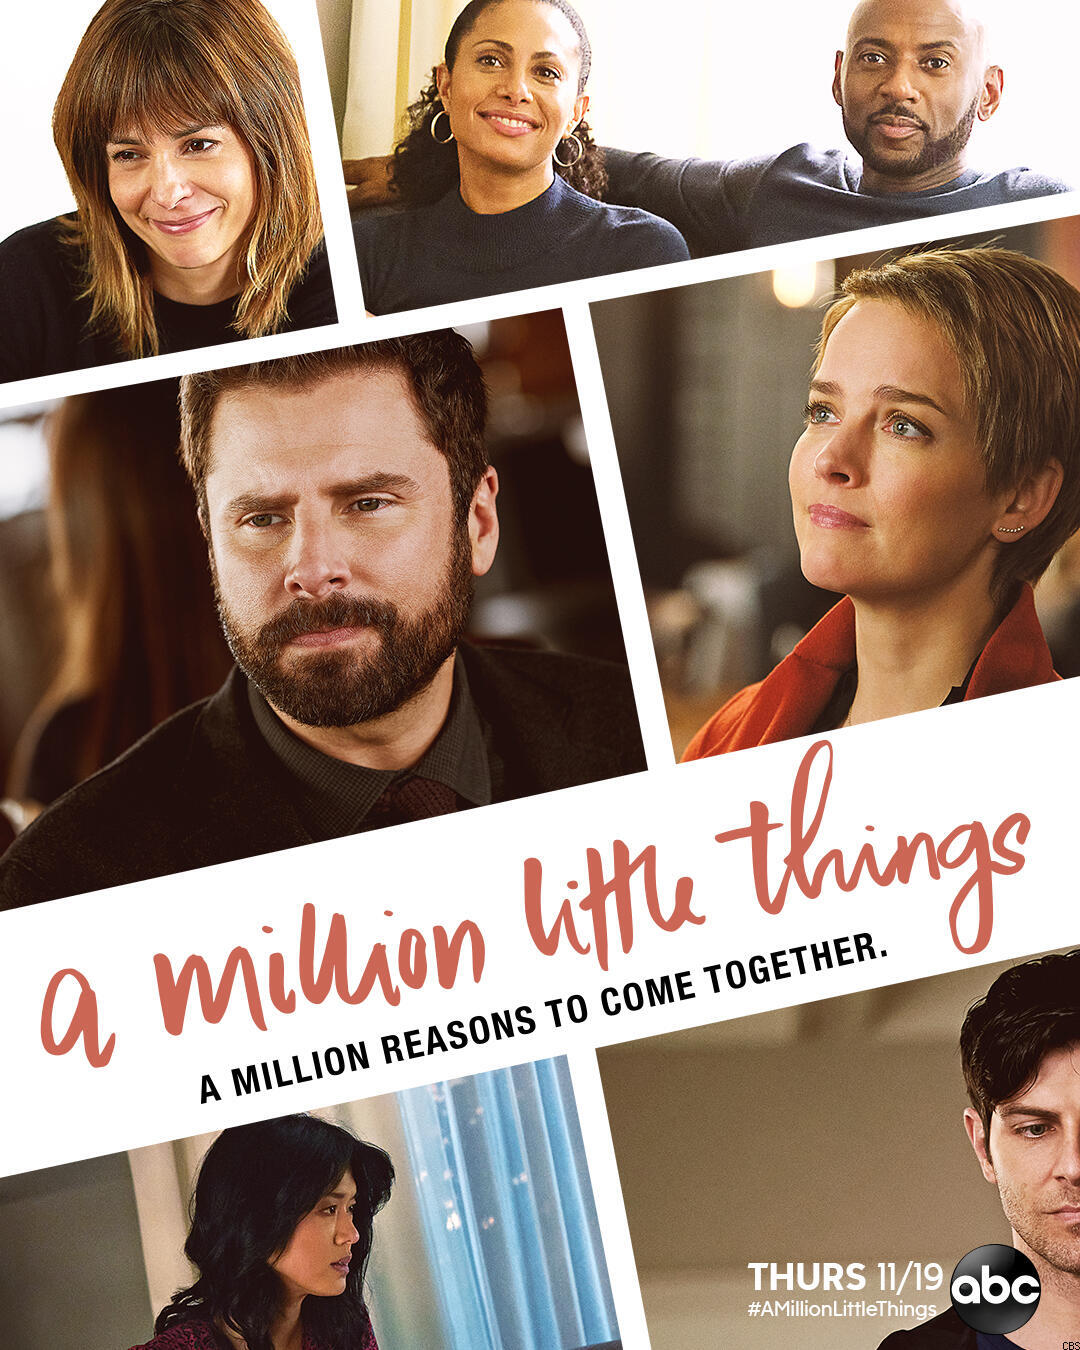 A Million Little Things Season 2 Episode 5 Subtitle (English Srt) Download